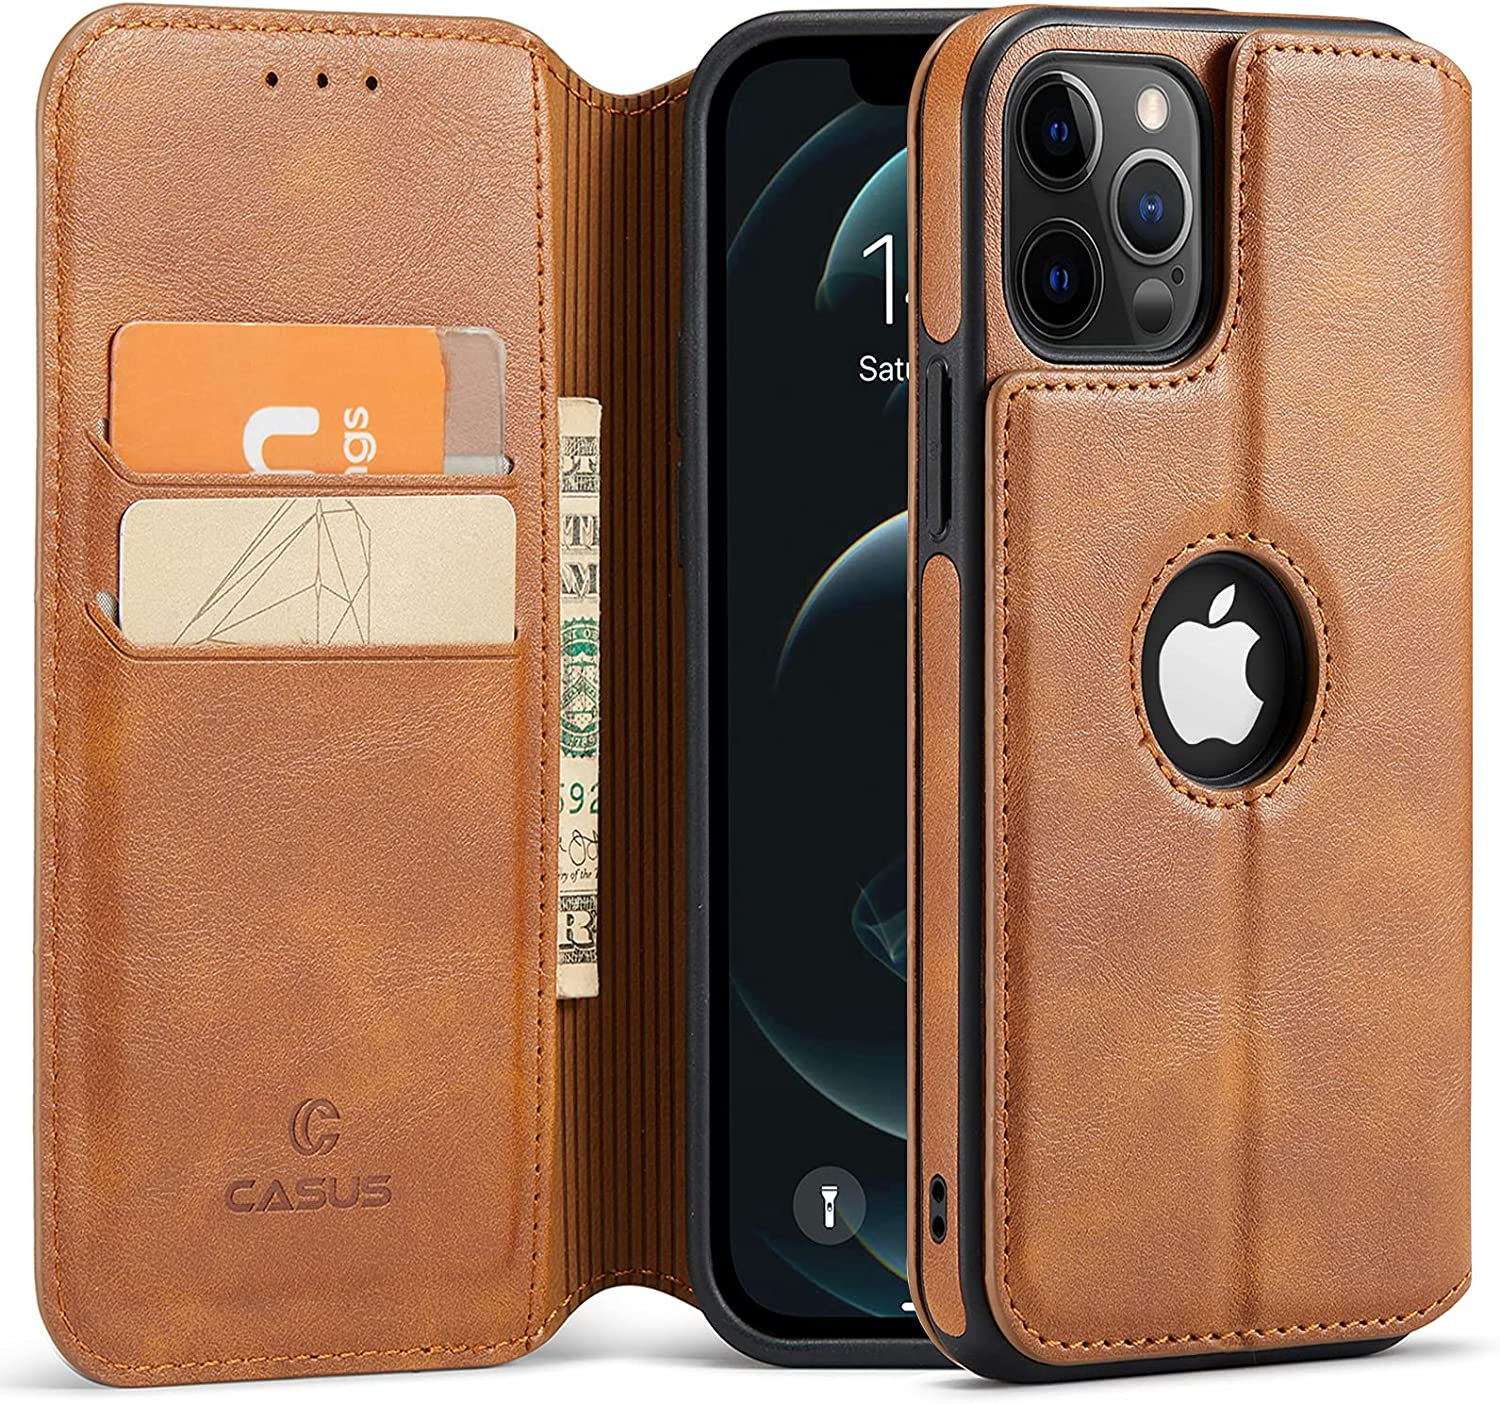 Casus Logo View Compatible with iPhone 12 Pro Max Wallet Case Slim Magnetic Flip Cover Faux Leather with Card Holder Slot Thin Kickstand (2020) 6.7